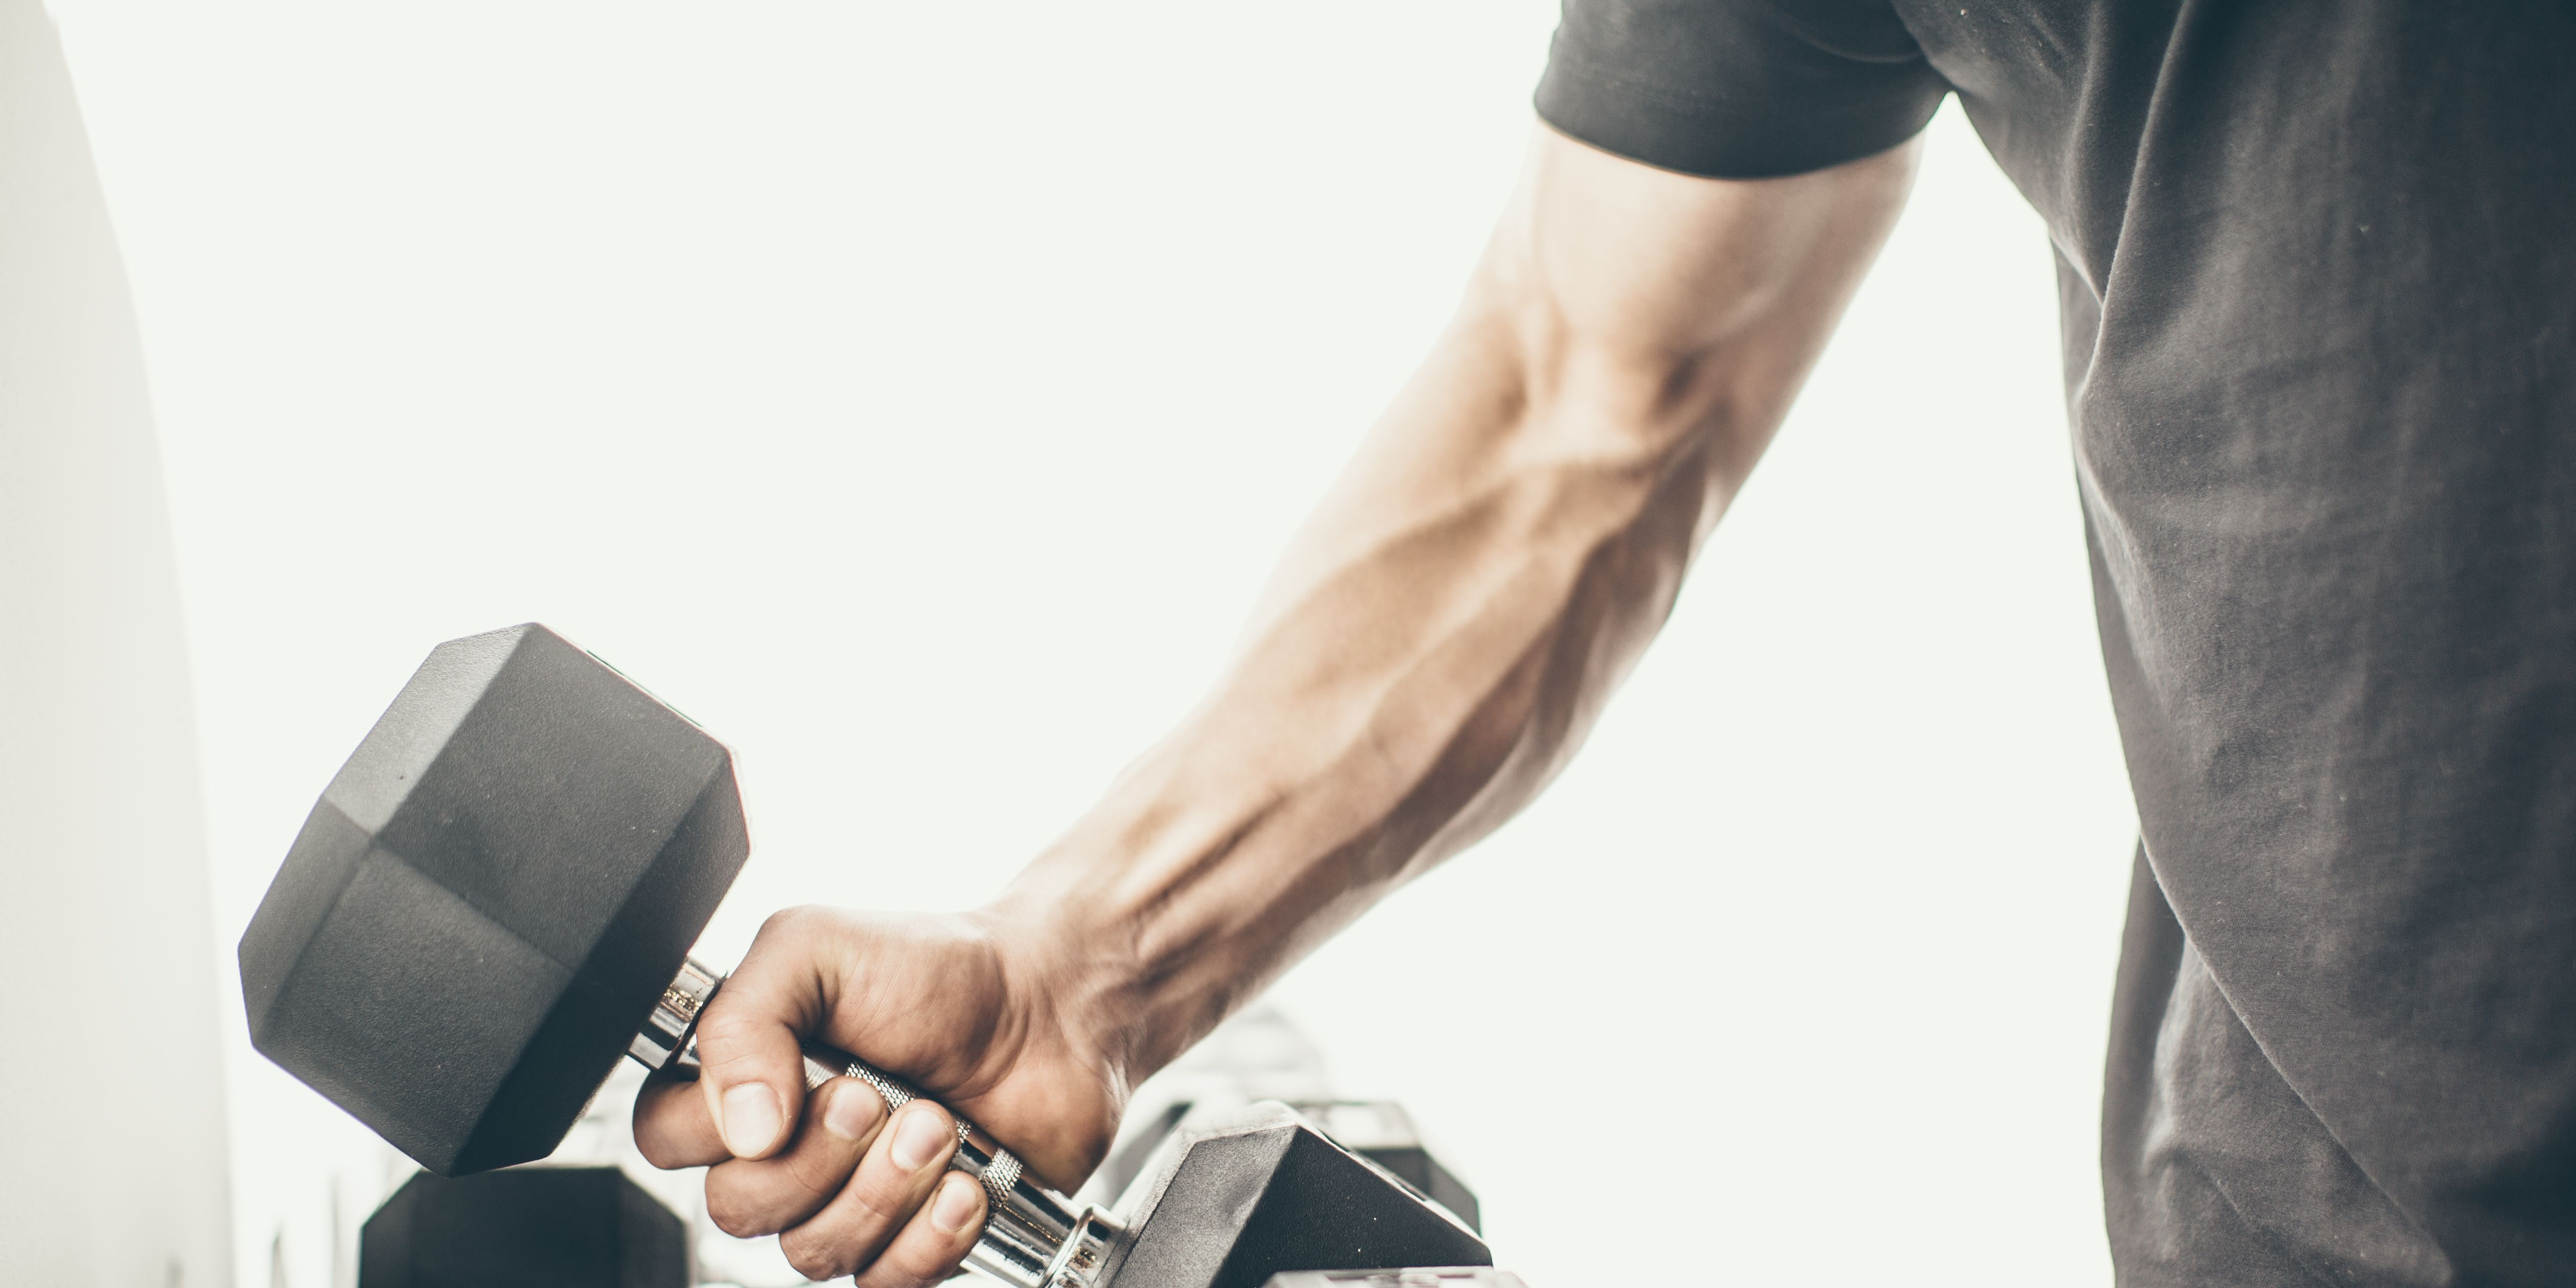 Cropped Hand Of Muscular Man Holding Dumbbell Against White Background